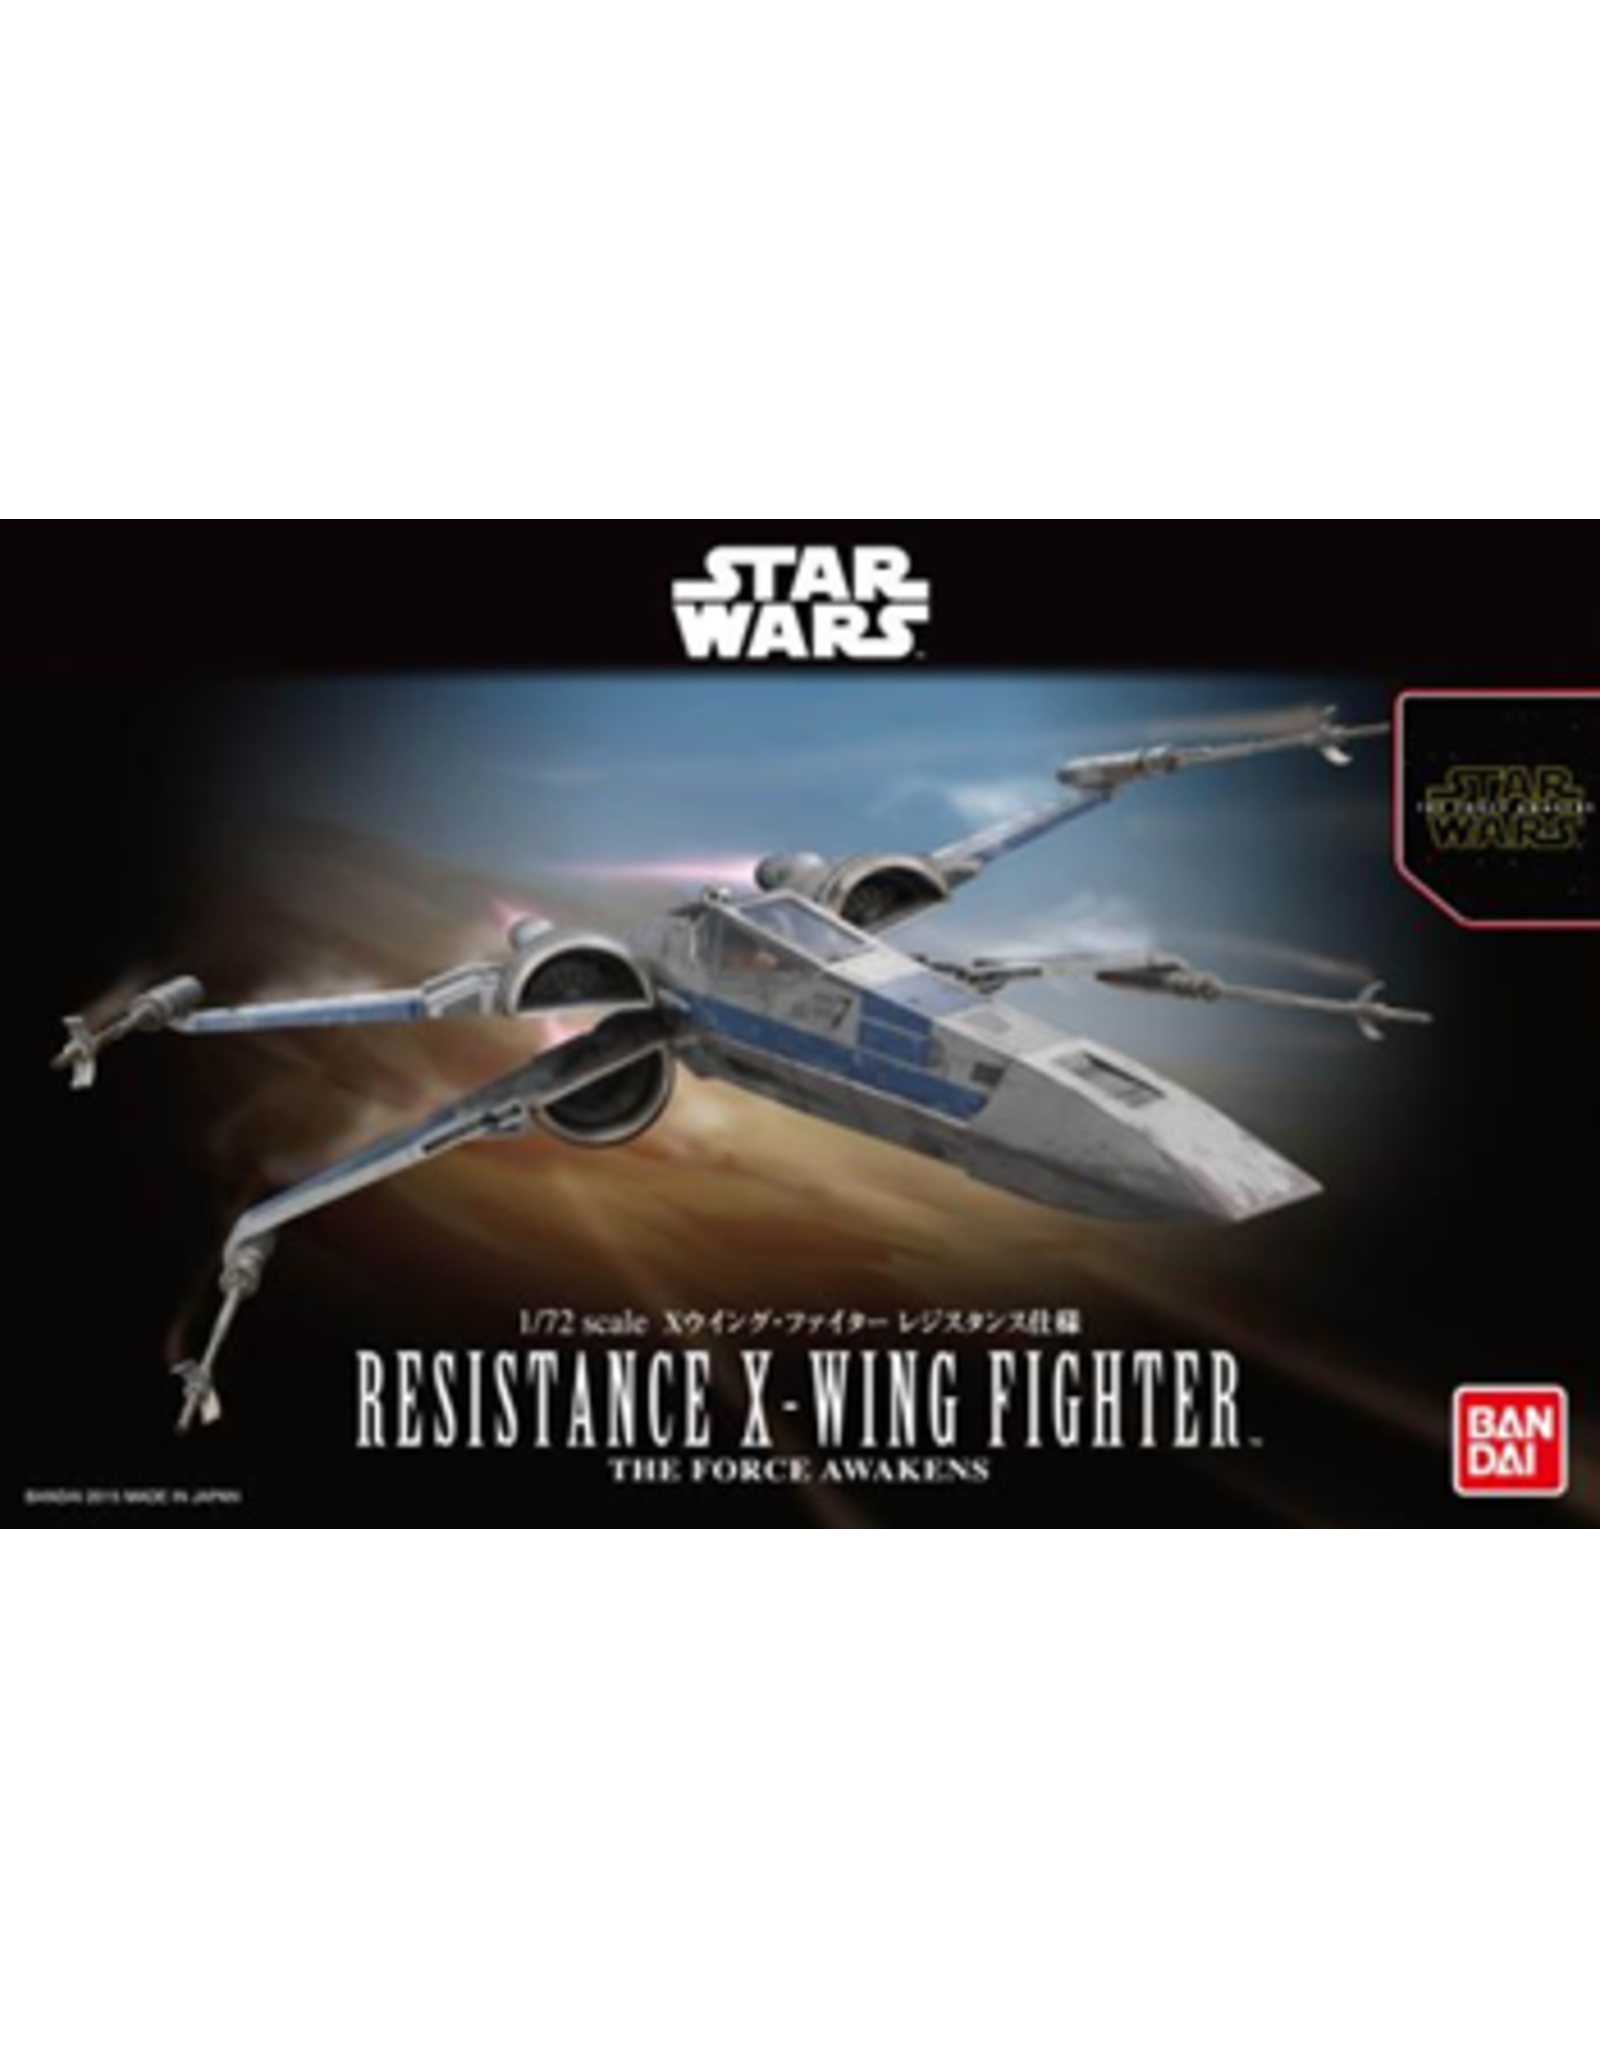 BANDAI 1/72 RESISTANCE X-WING FIGHTER